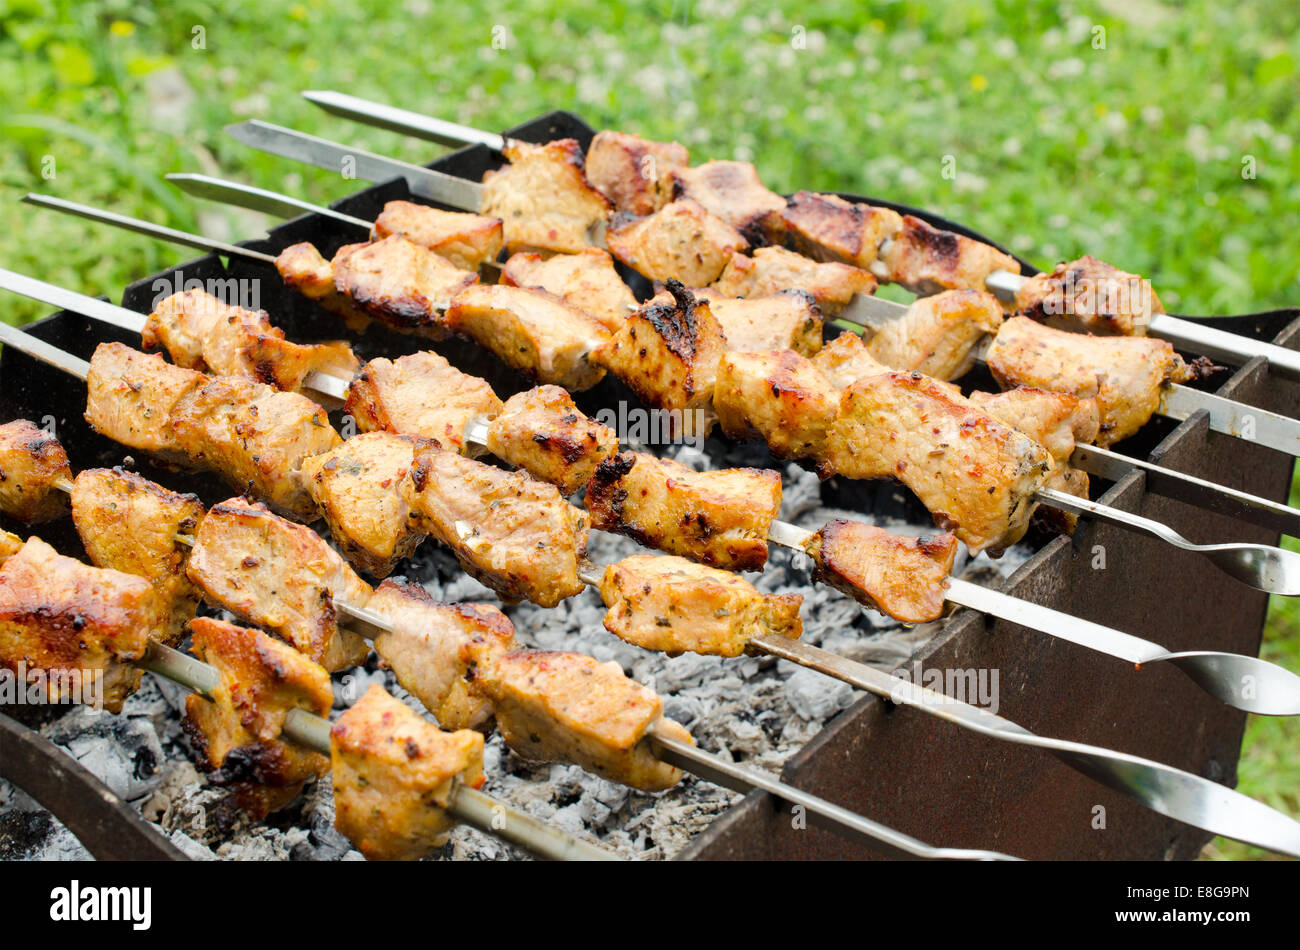 skewers of fried chicken on the grill - Stock Image